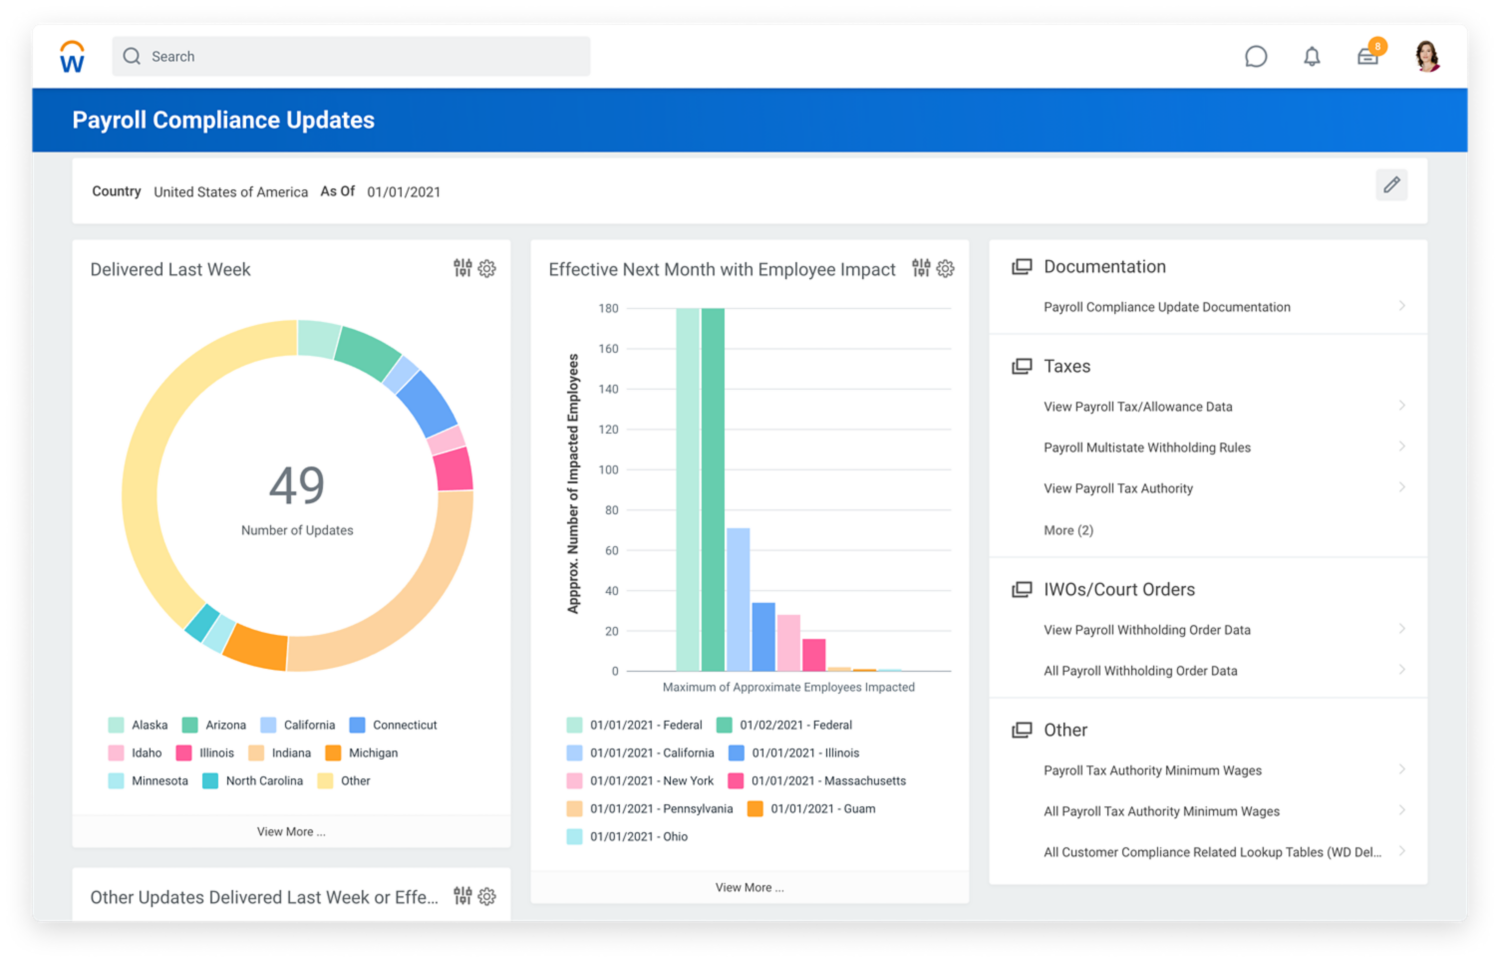 Payroll compliance updates dashboard for the U.S. showing updates delivered last week and the approximate number of impacted employees.